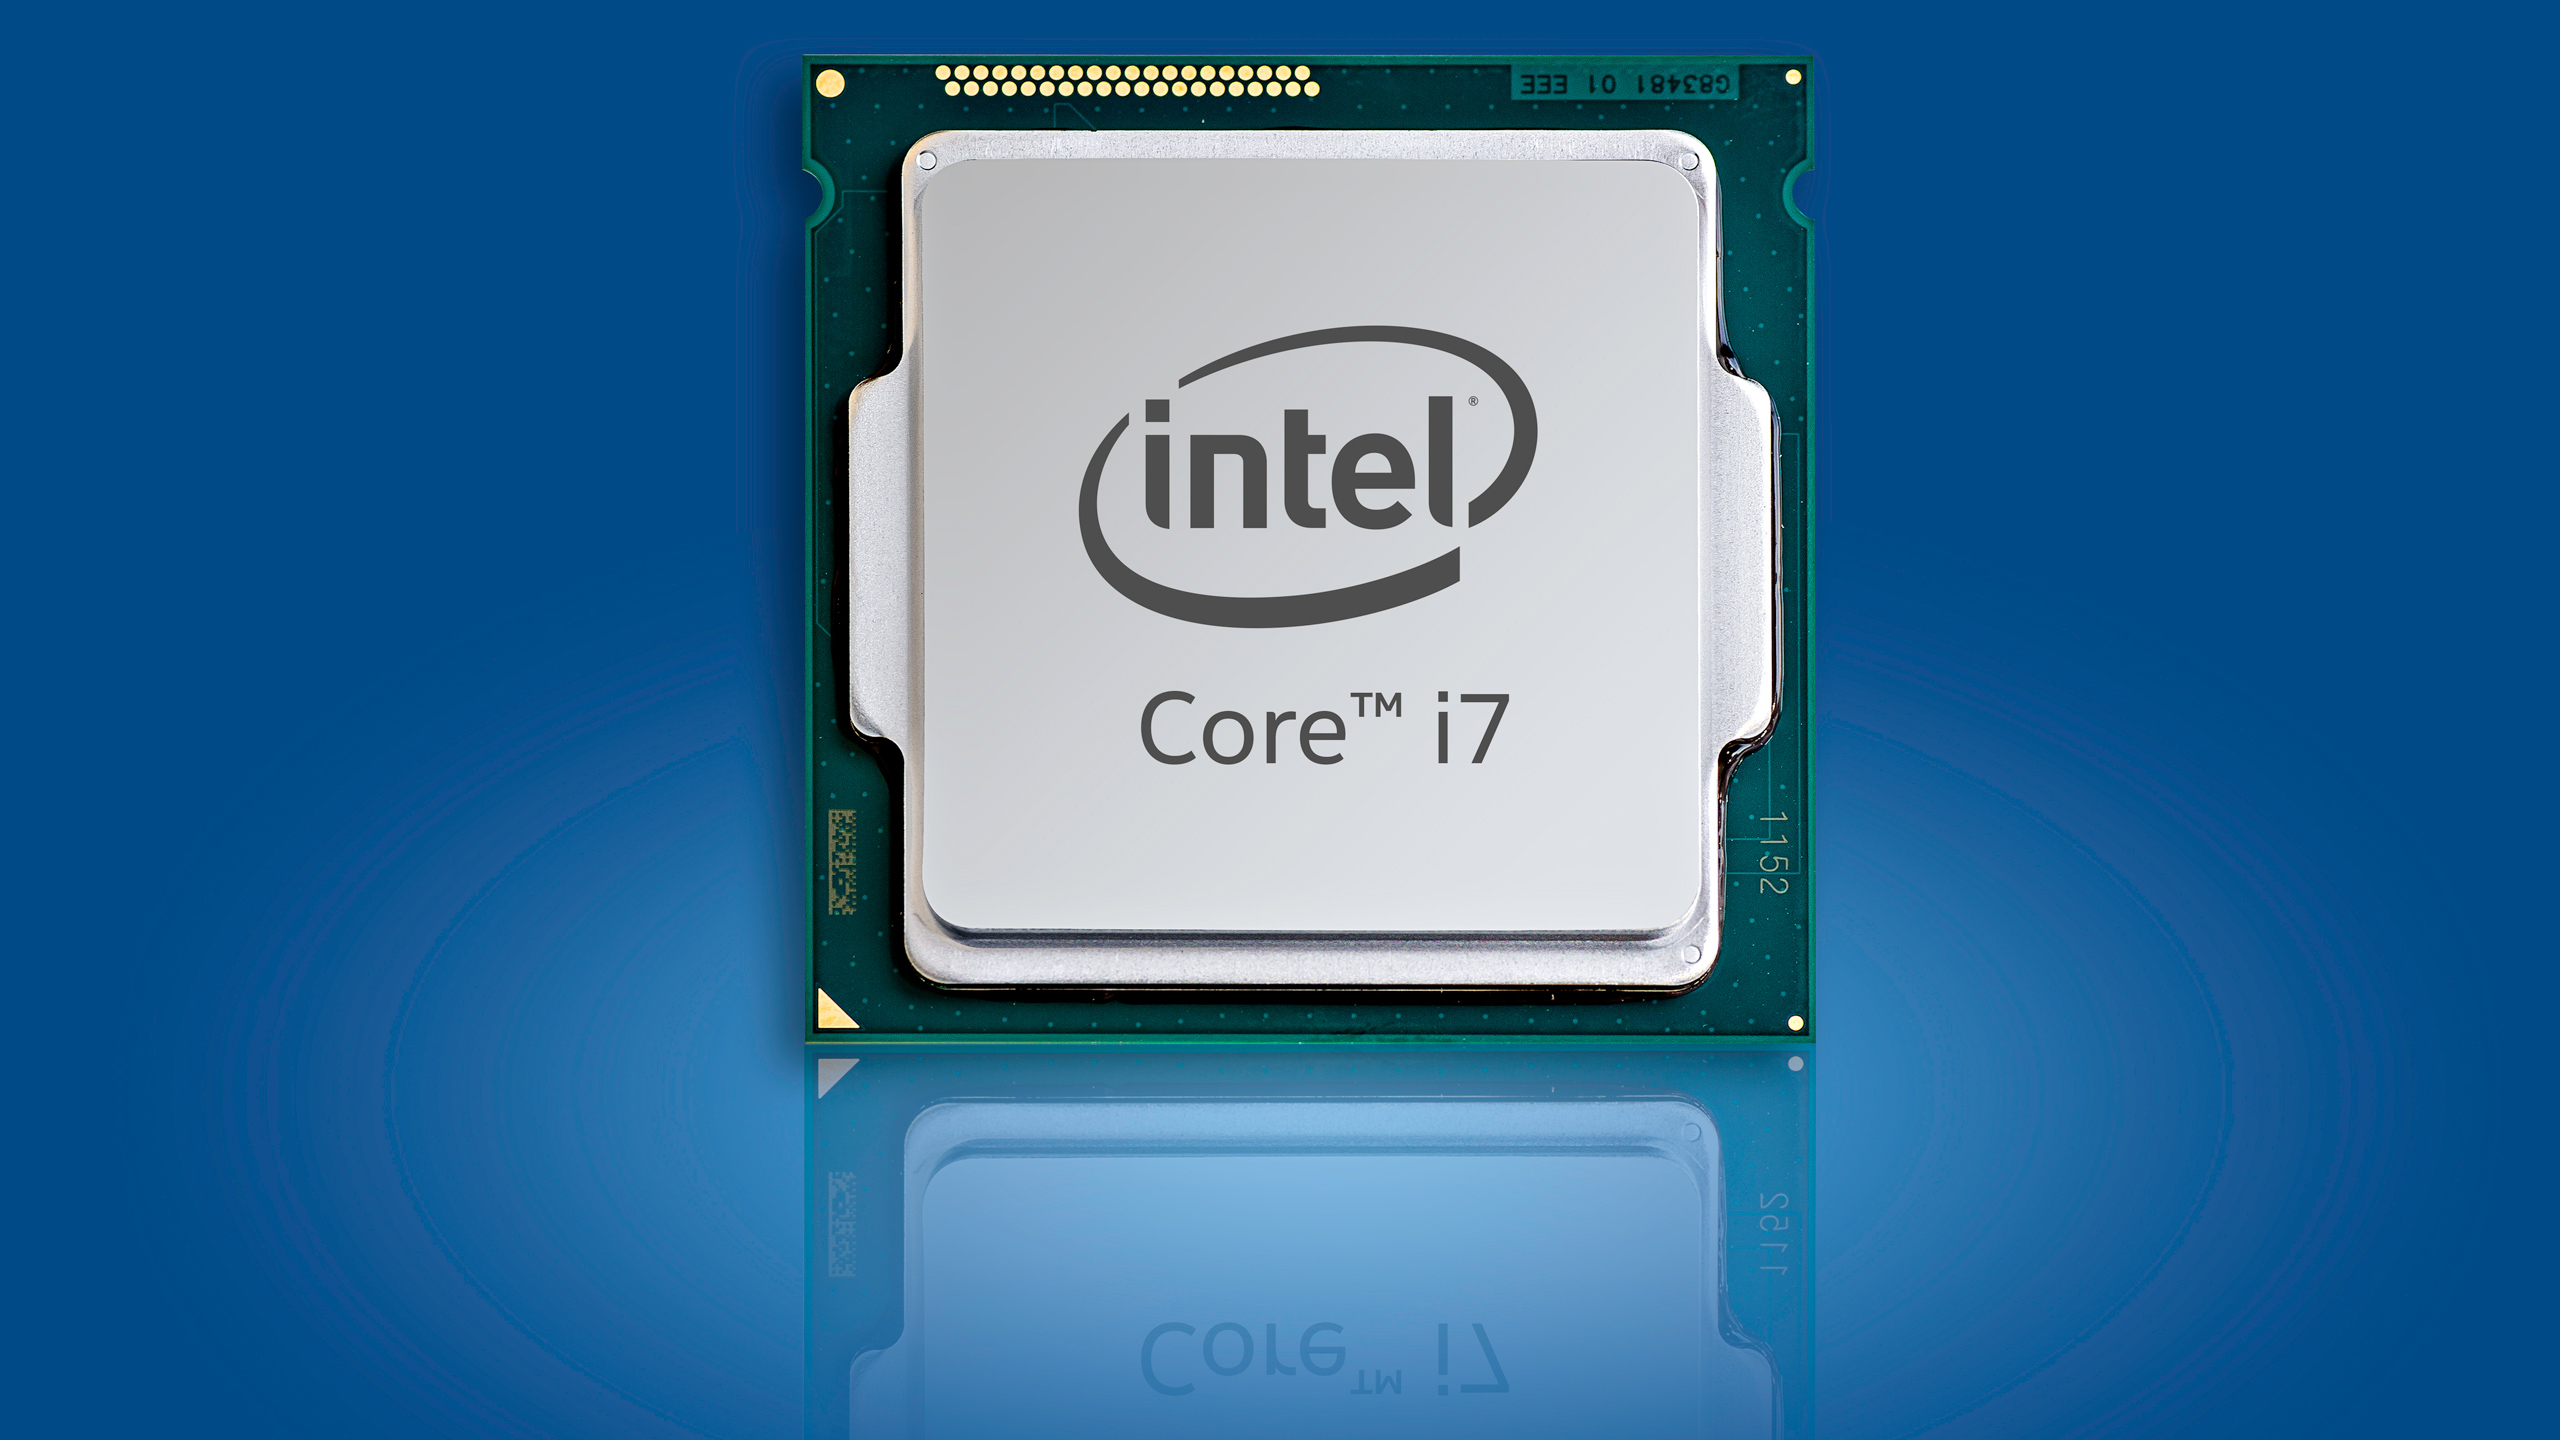 Intel announces Broadwell desktop CPUs — here's why you shouldn't buy them